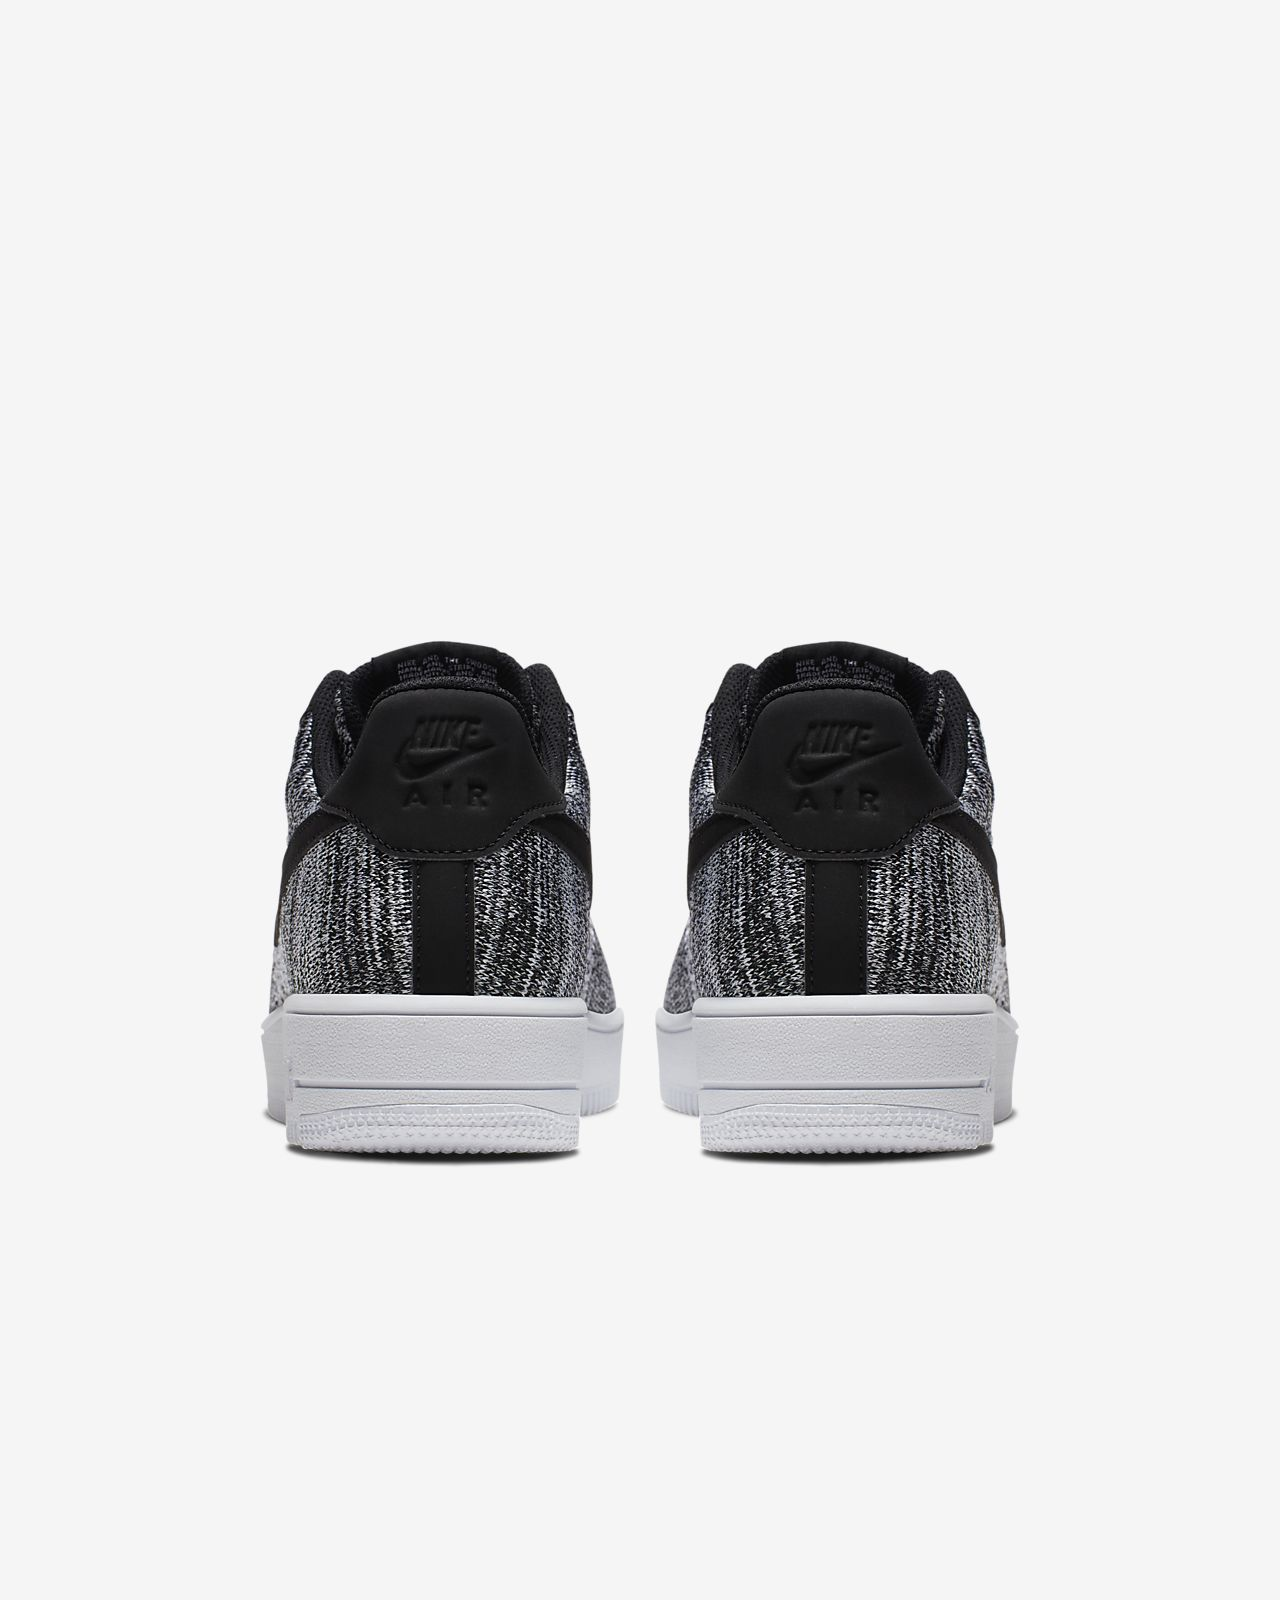 0d49bb930 Nike Air Force 1 Flyknit 2.0 Shoe. Nike.com CA